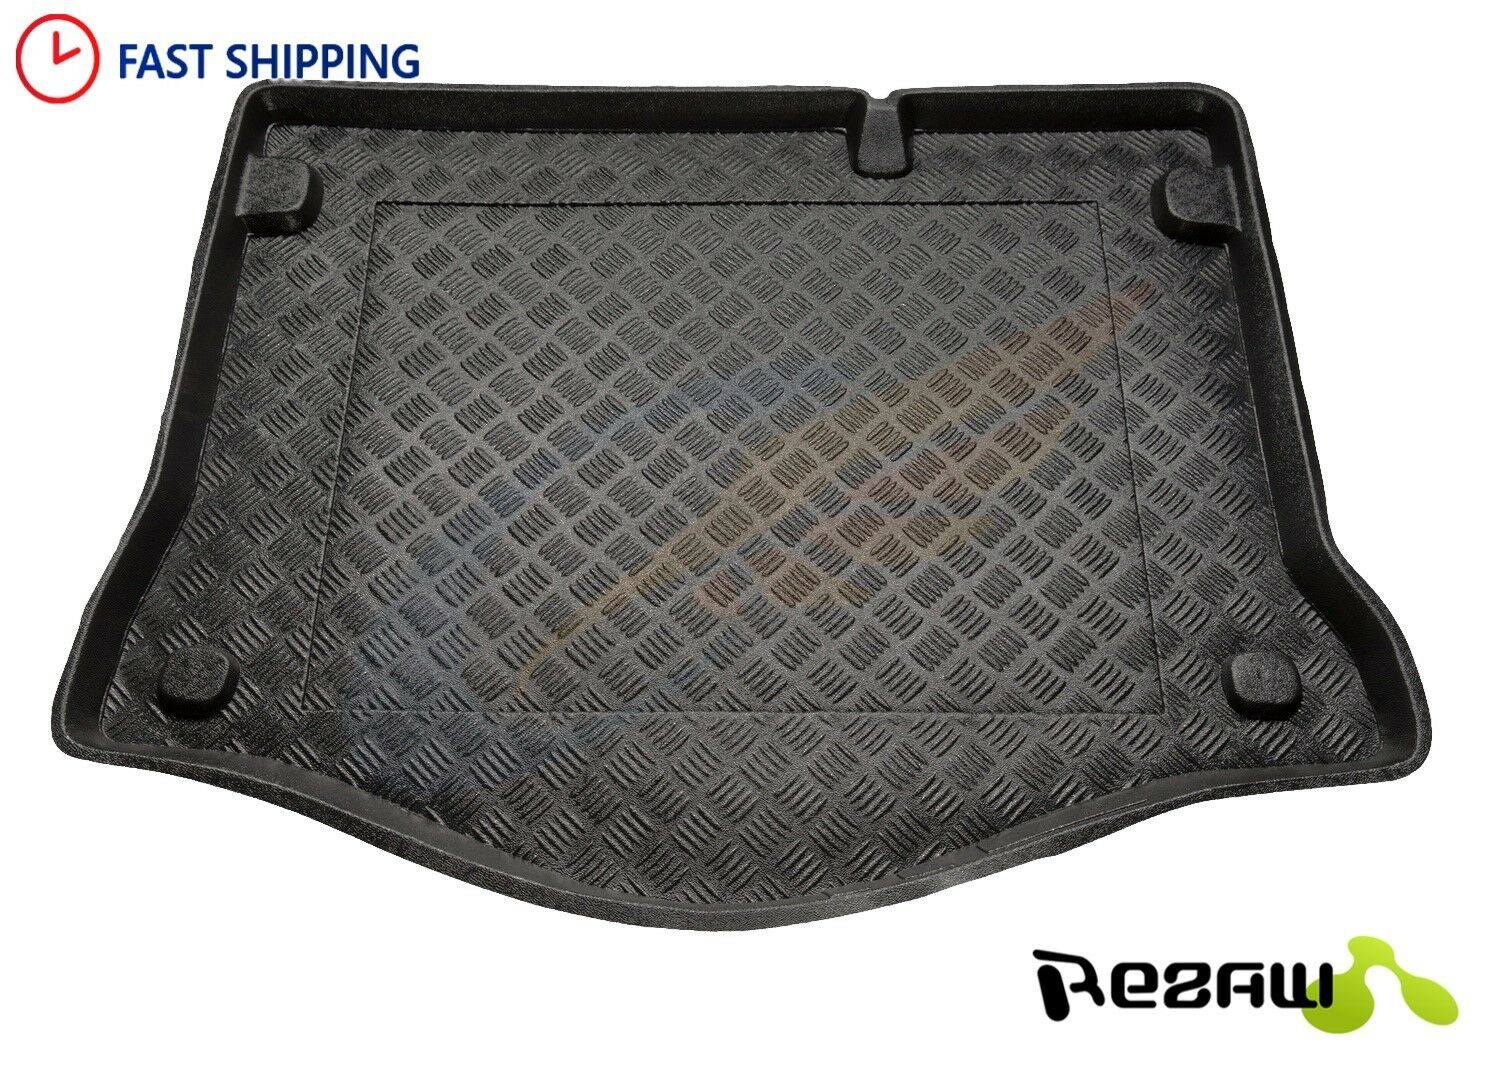 FITS FORD Focus 2005-2011 Tailored Boot tray liner car mat Heavy Duty 3//5 door